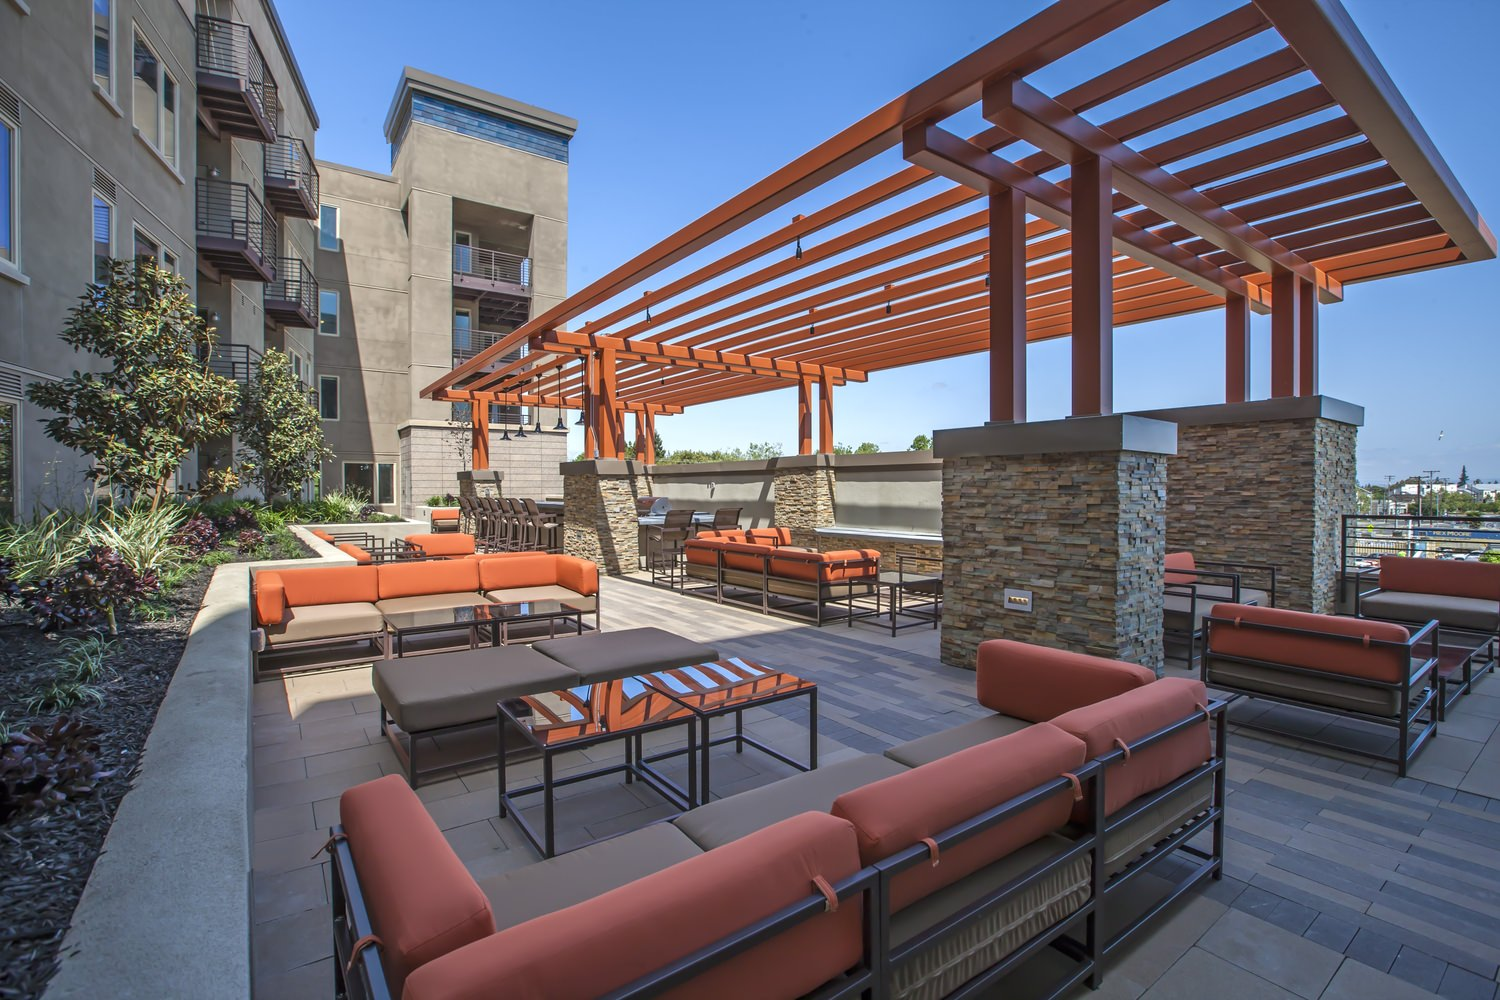 An outdoor pation full of orange and brown furniture that is next to a building made of bricks.